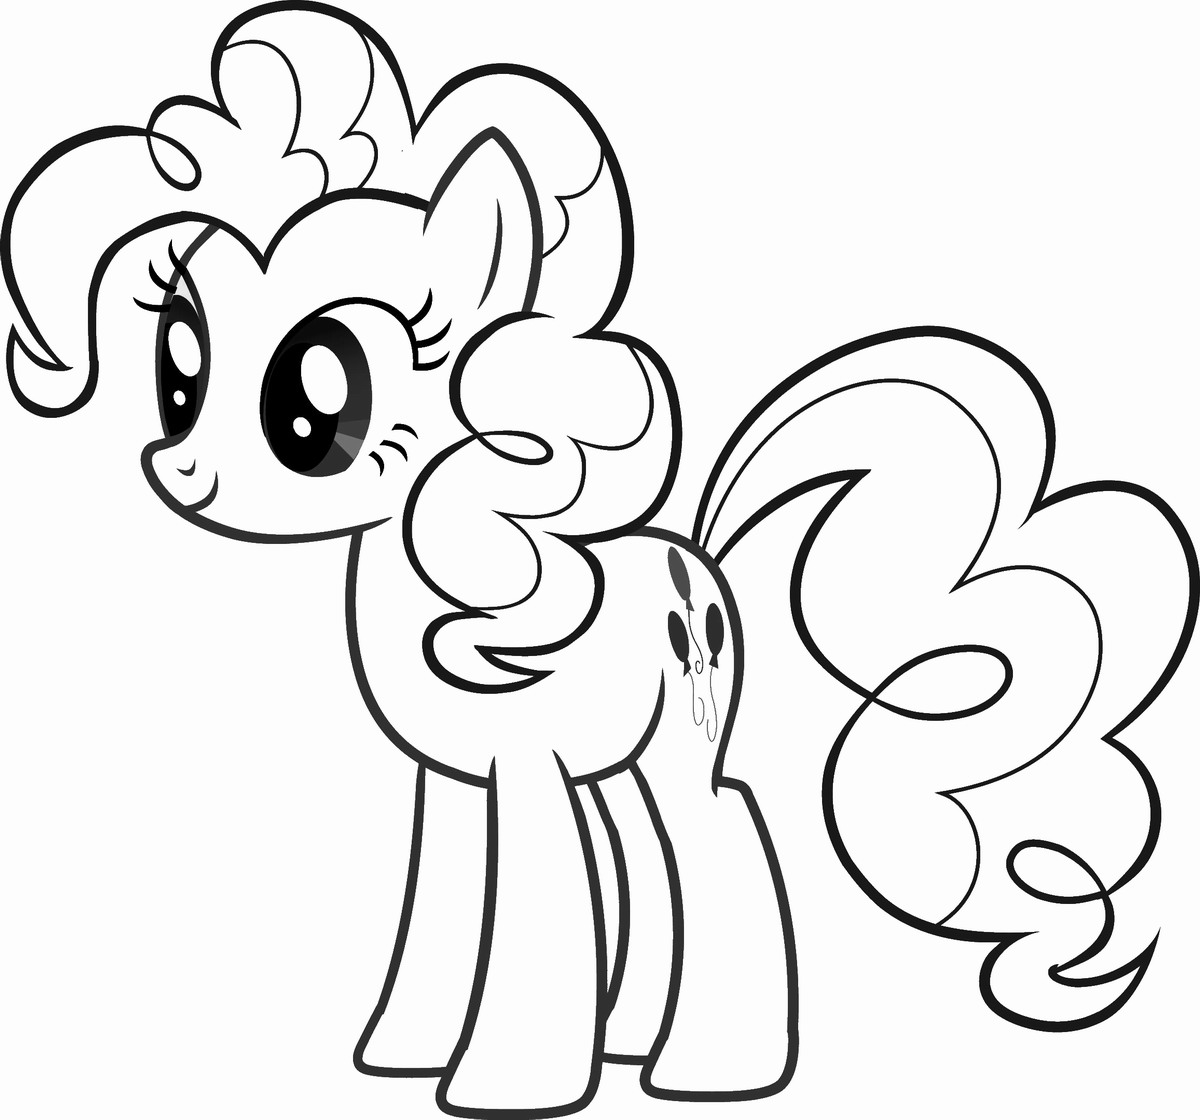 colouring pictures my little pony free printable my little pony coloring pages for kids little pictures colouring pony my